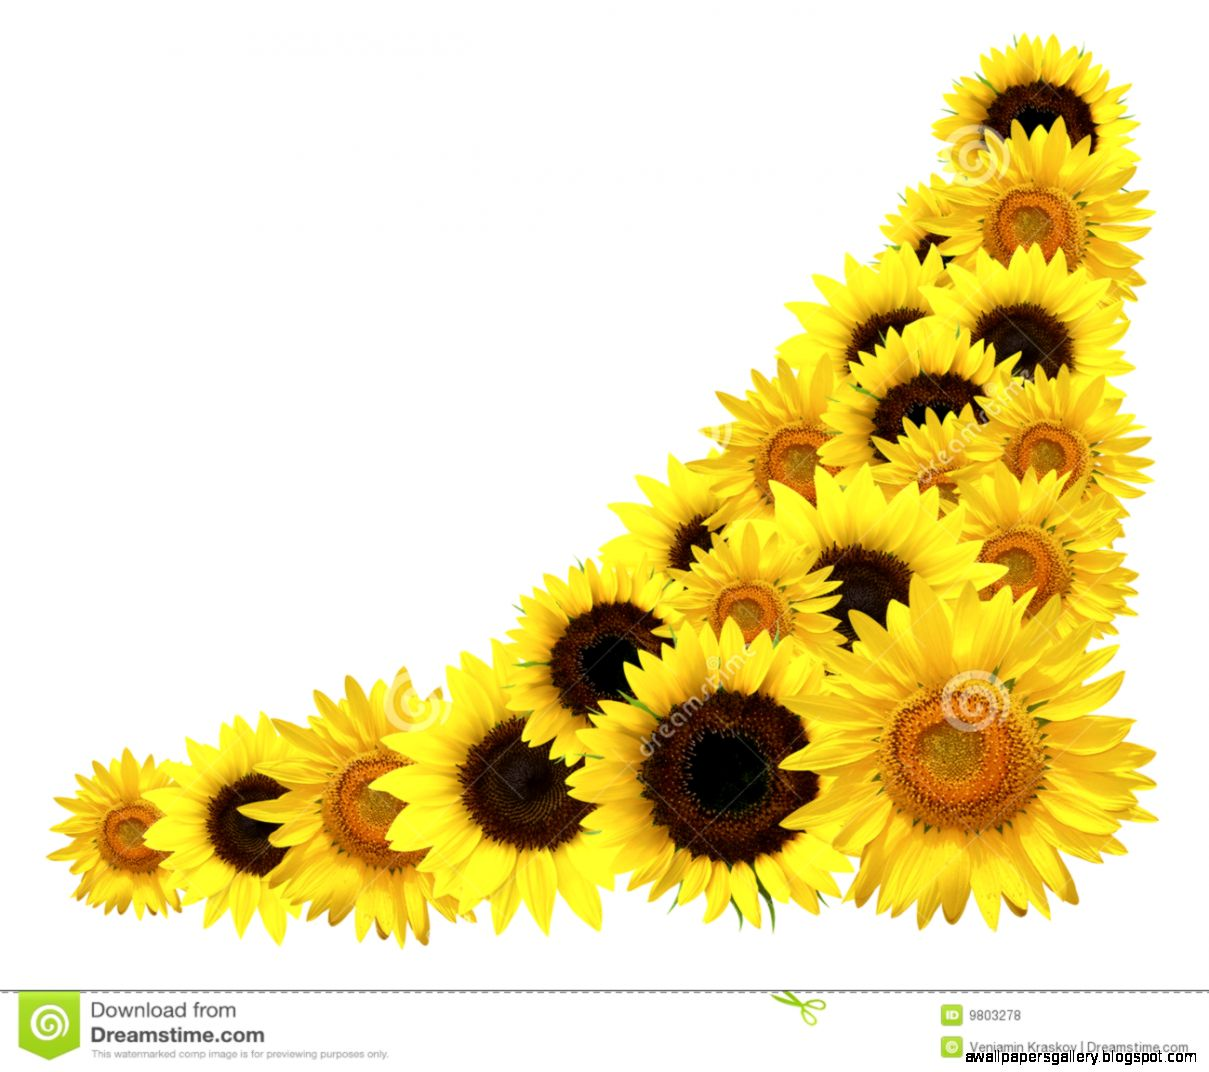 graphic freeuse Wallpapers gallery . Sunflower corner border clipart